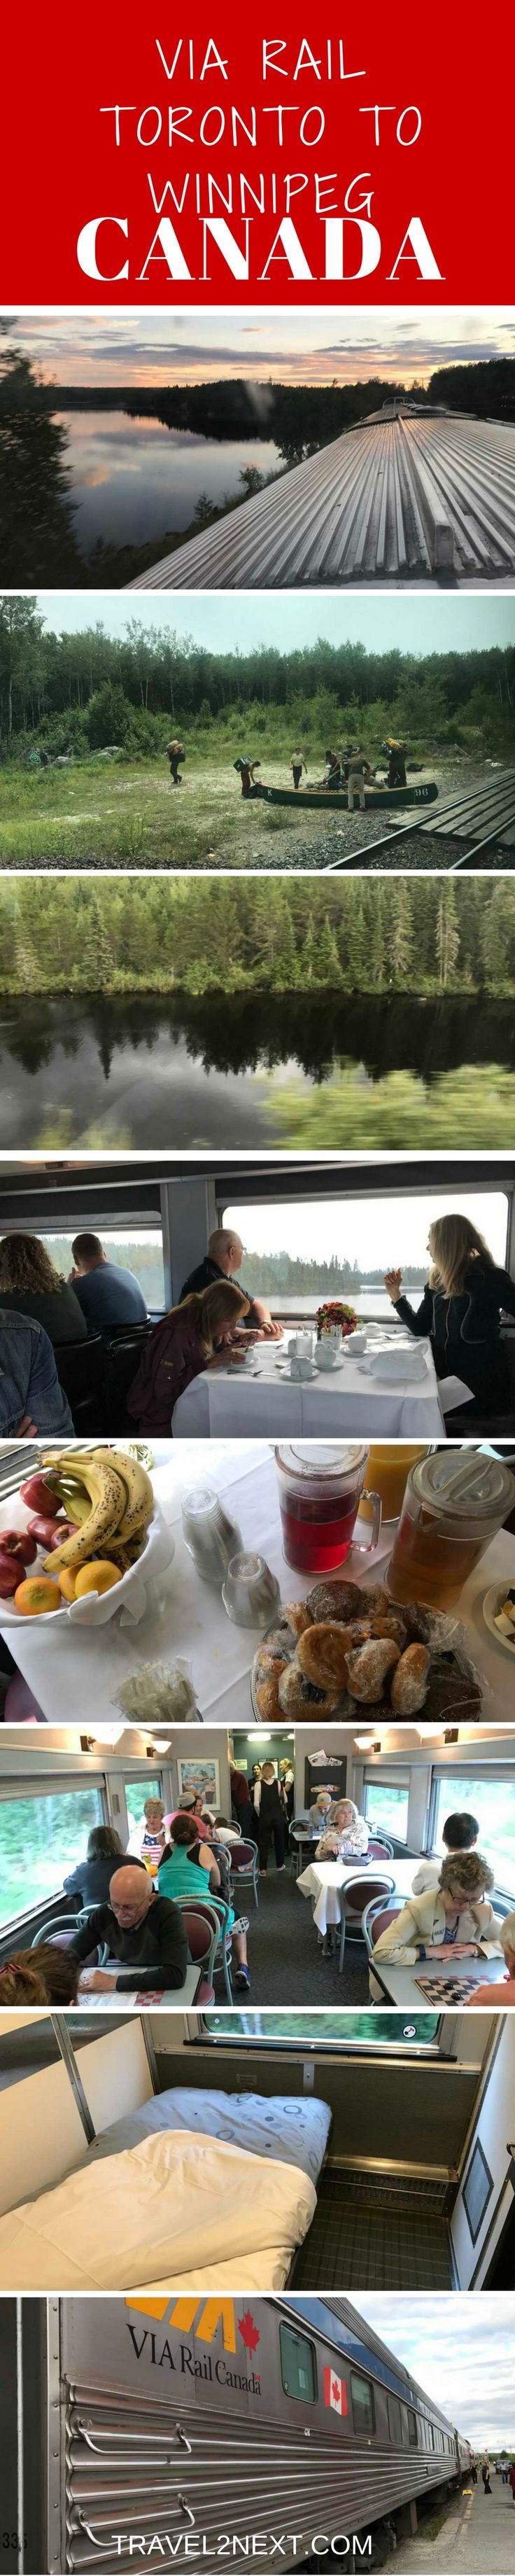 """The Canadian"" is a train journey that travels 4466 km, from the Boreal forests of Northern Ontario through the Prairies to the Canadian Rockies. It's a classic train journey across Canada right through the heart of the country."